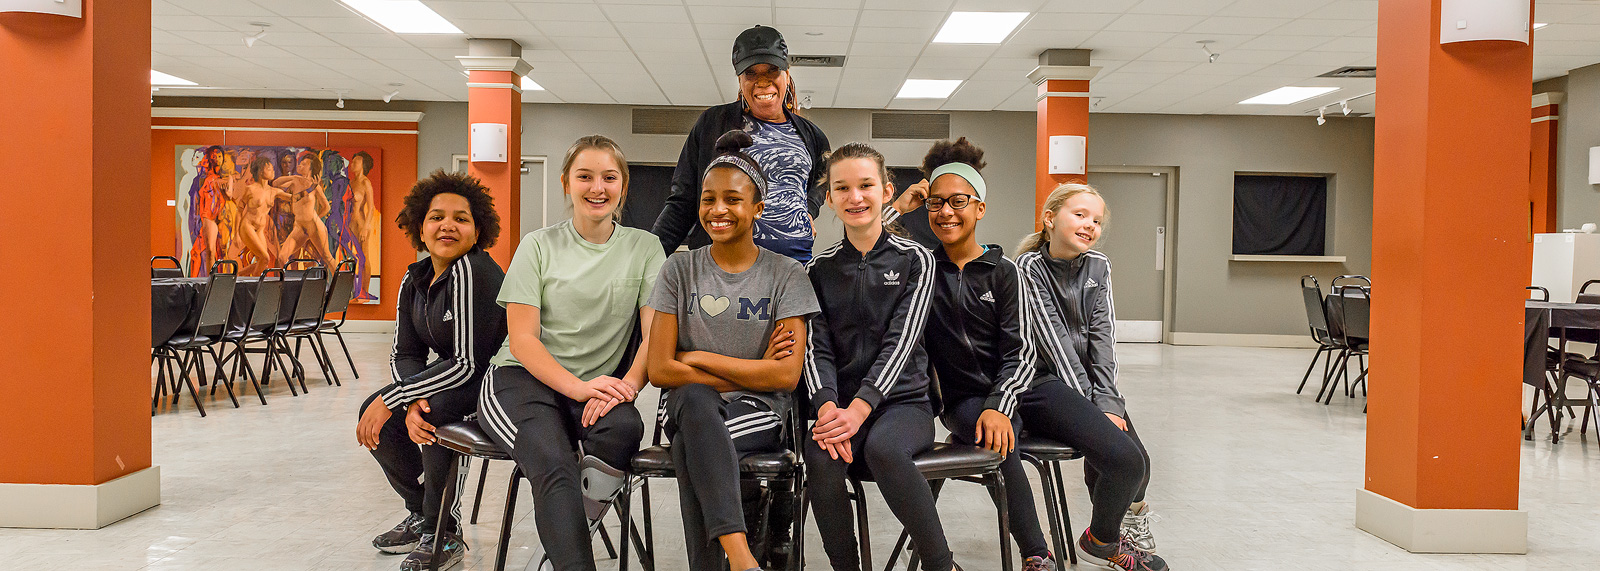 Gina Danene Thompson with one of her dance classes at the Riverside Arts Center <span class='image-credits'>Doug Coombe</span>